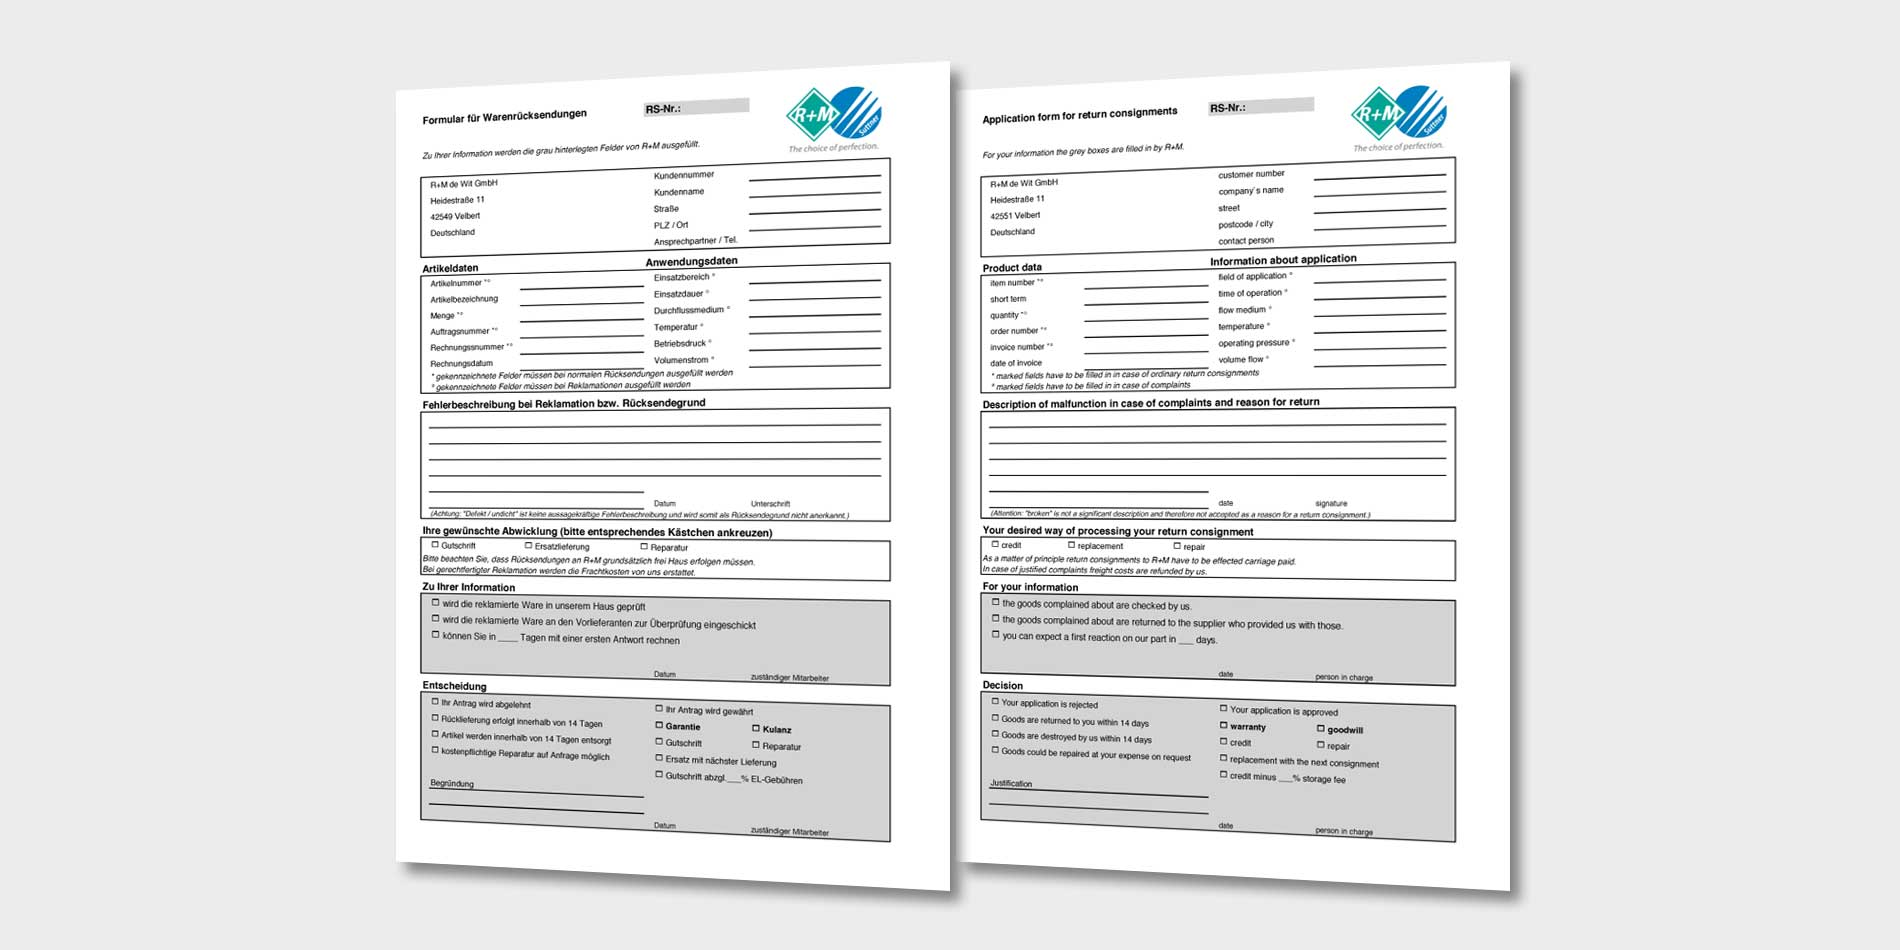 Formular für Warenrücksendungen / Application form for return consignments